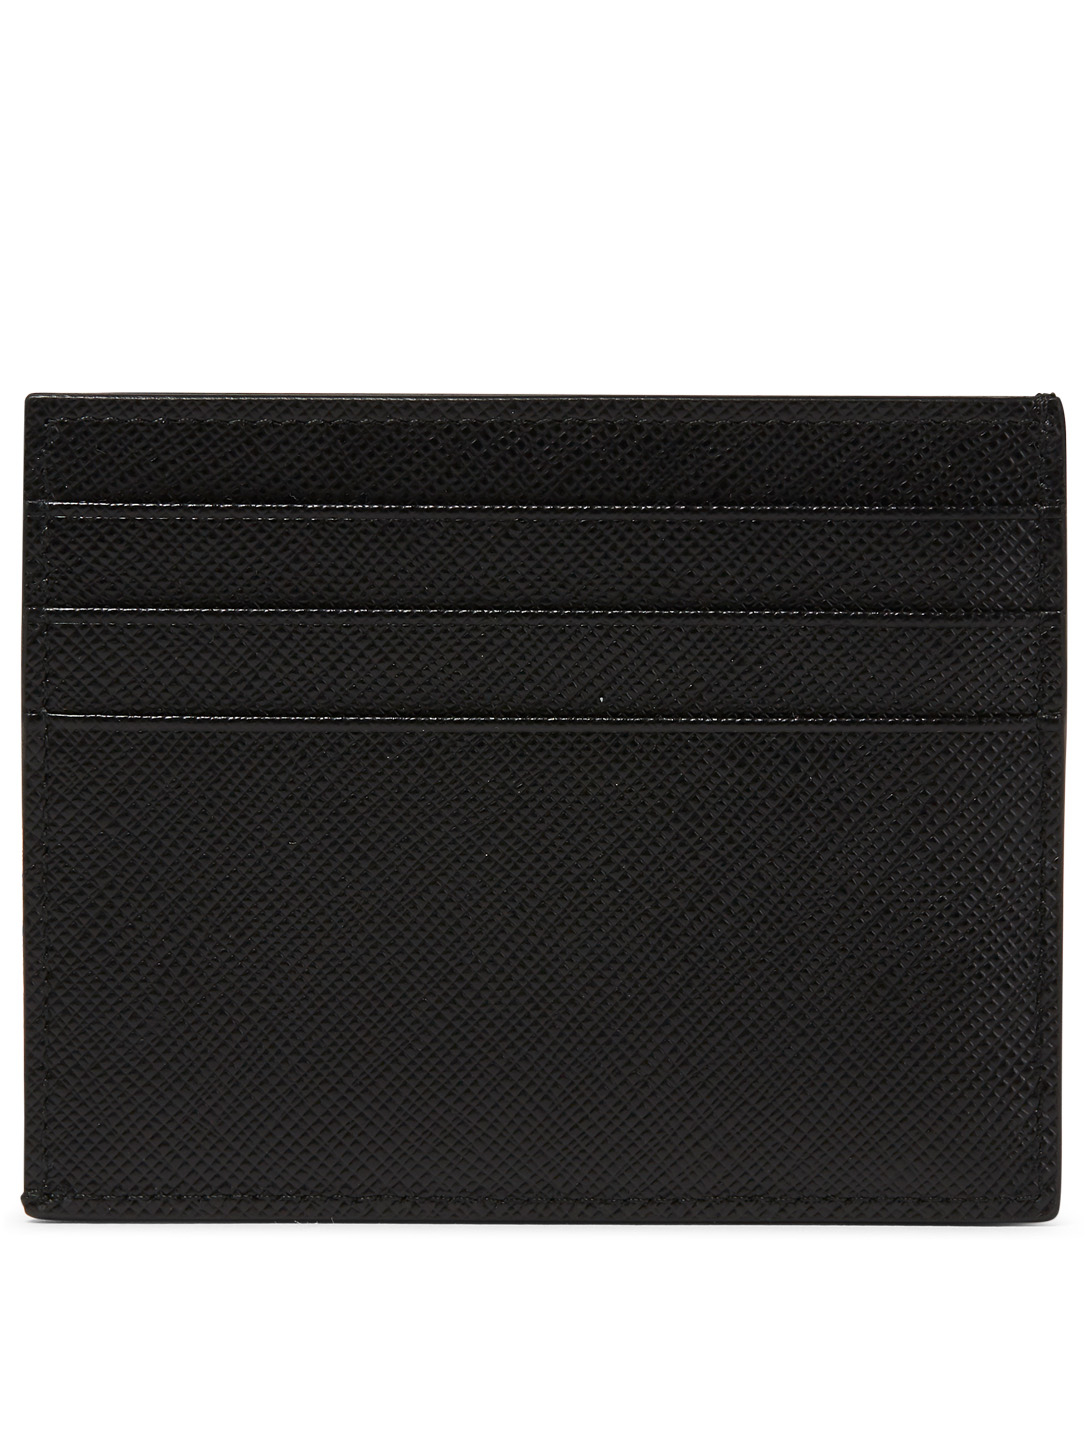 PRADA Saffiano Leather Card Holder Men's Black